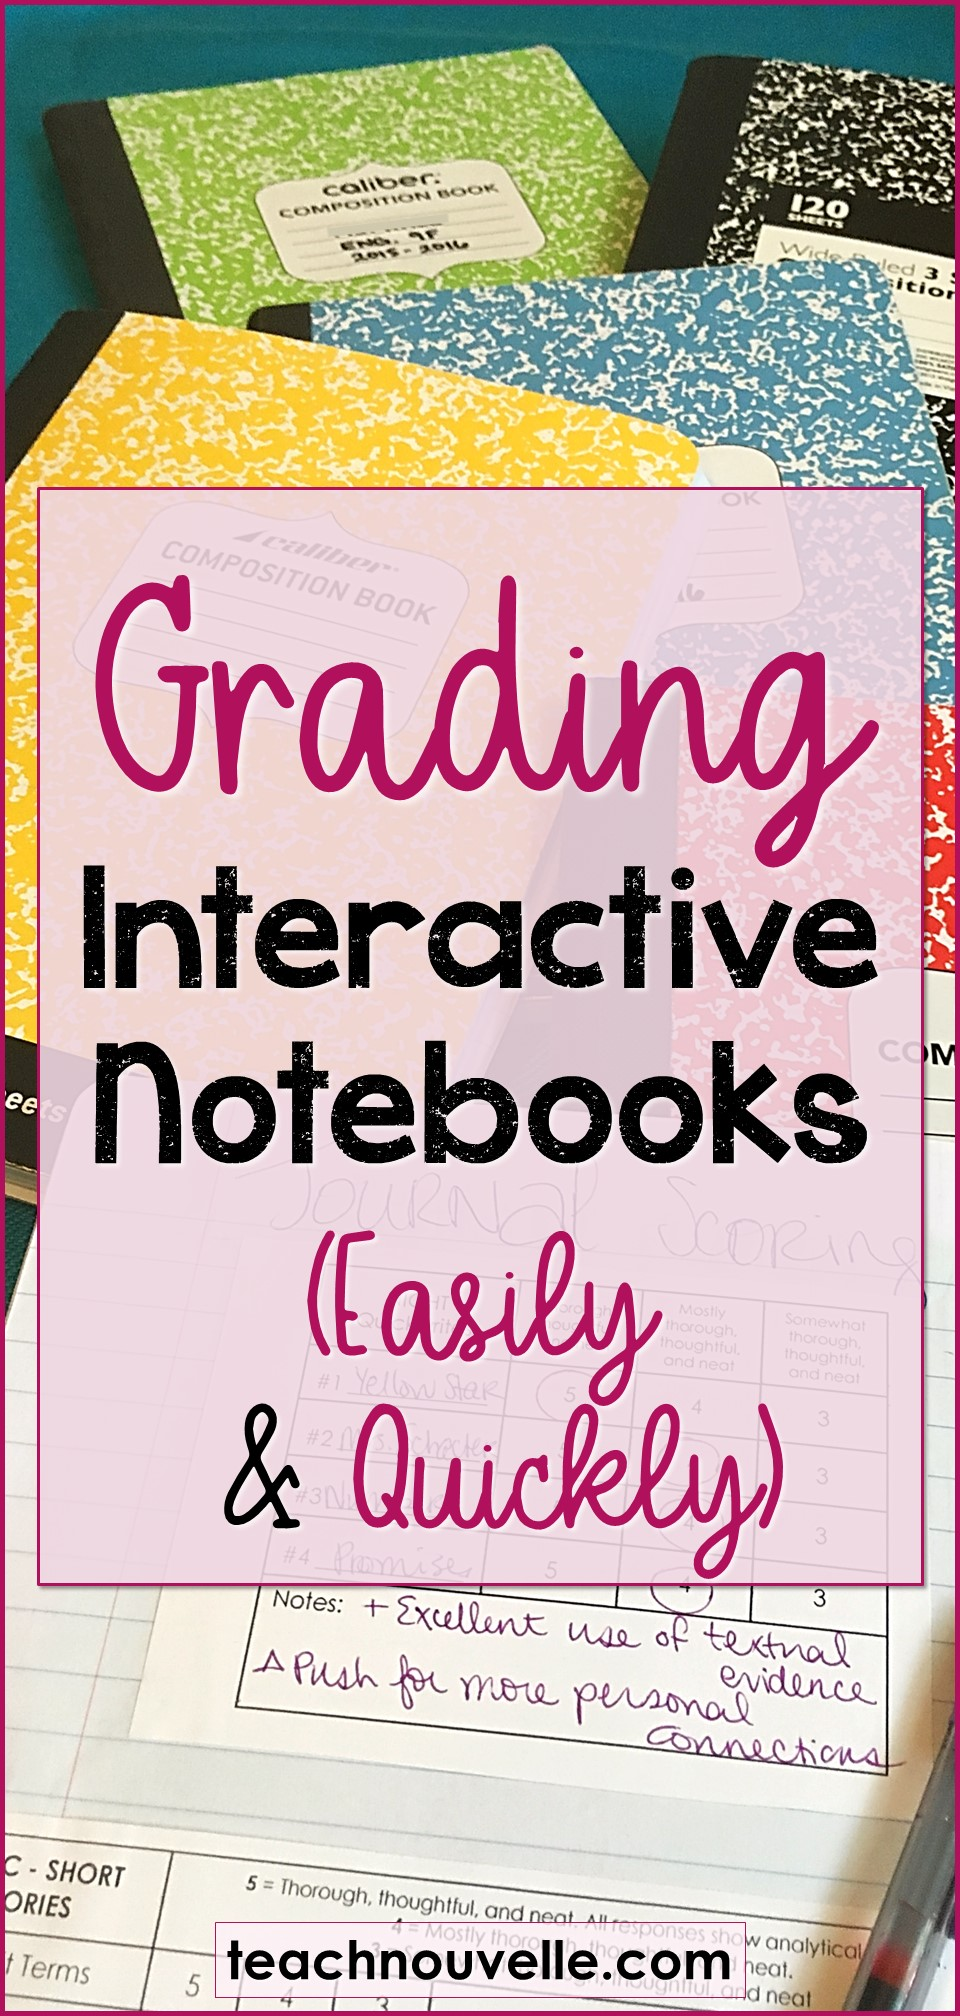 Here are three tips for grading interactive notebooks quickly and easily, even in a high school ELA classroom. This blog post contains actionable steps you can take today, along with a freebie to focus your grading. (teachnouvelle.com)